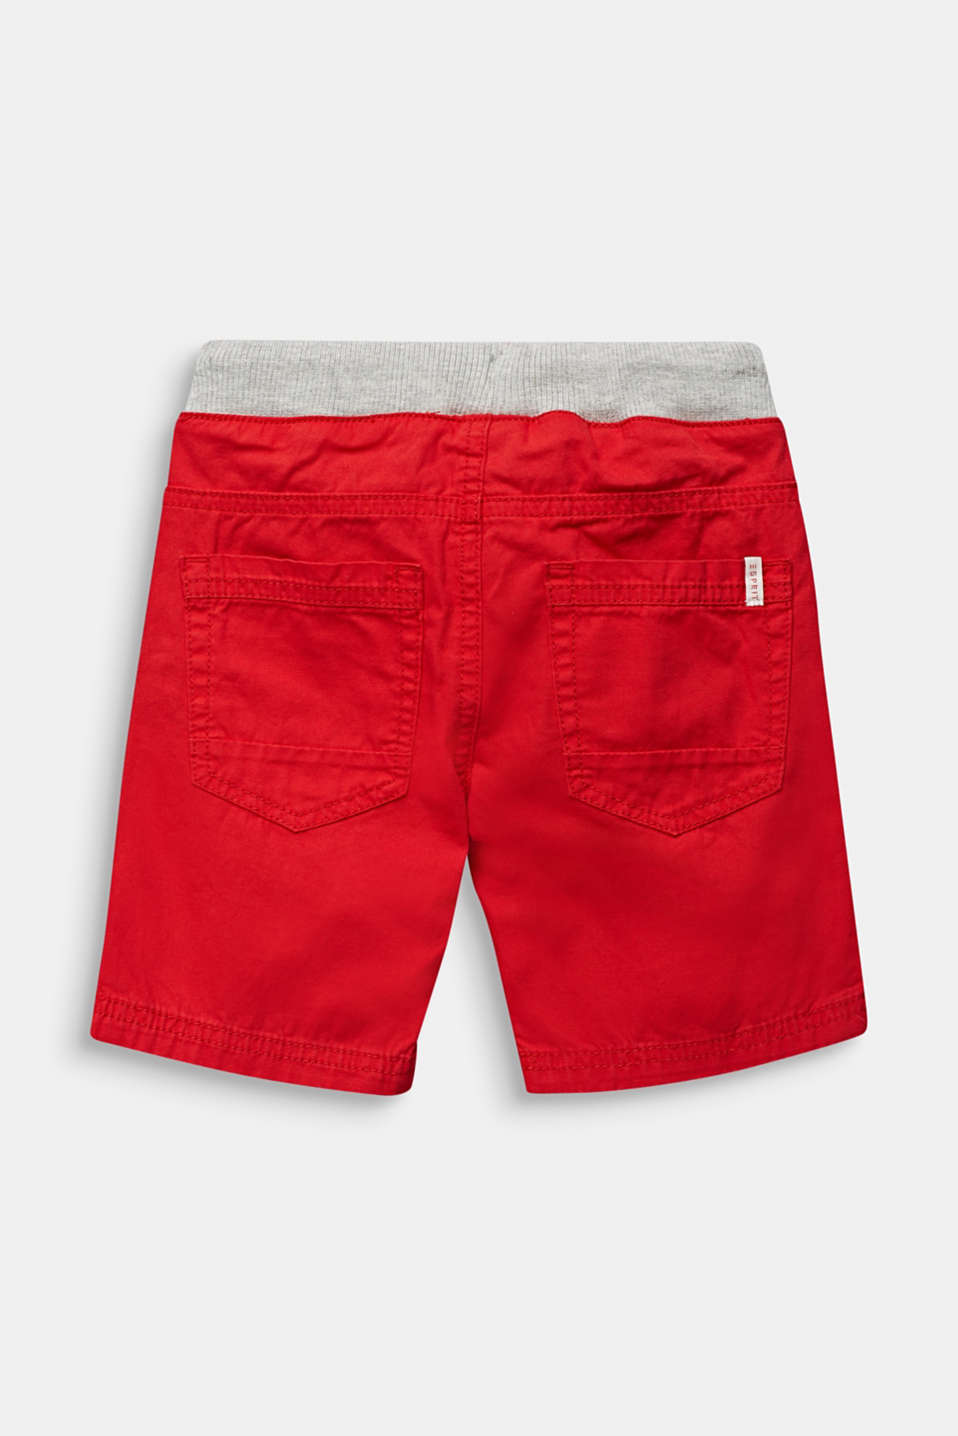 Shorts with a ribbed waistband, 100% cotton, RED, detail image number 1